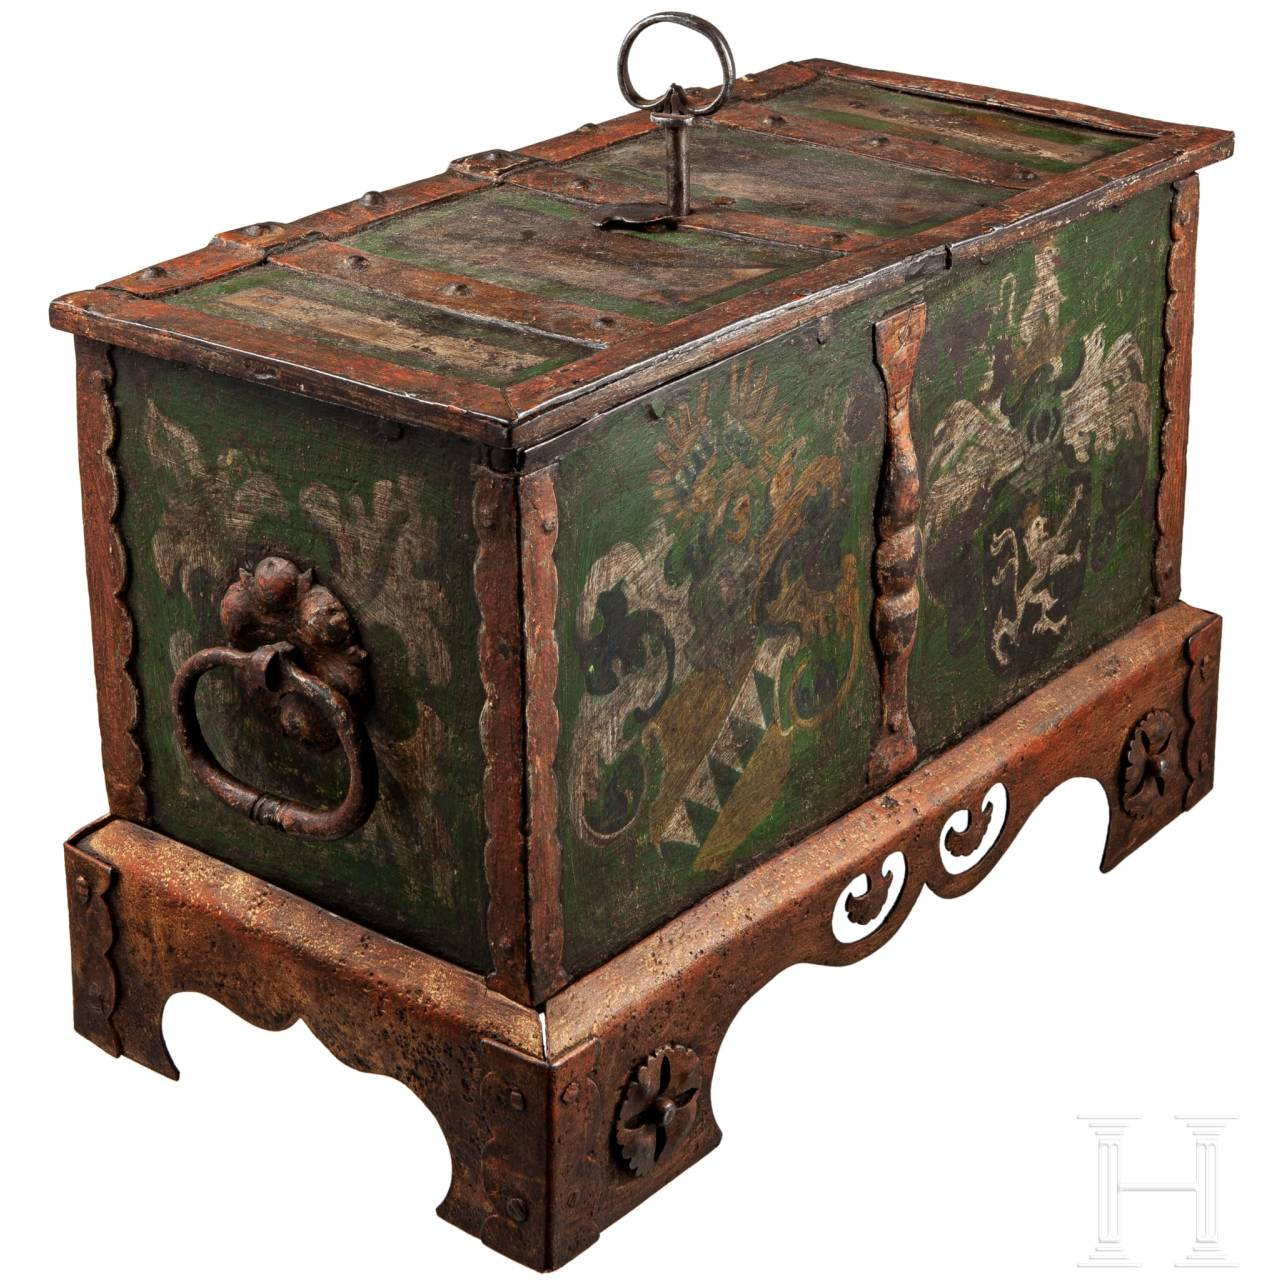 A large and painted Nurembergian iron casket, circa 1530/40